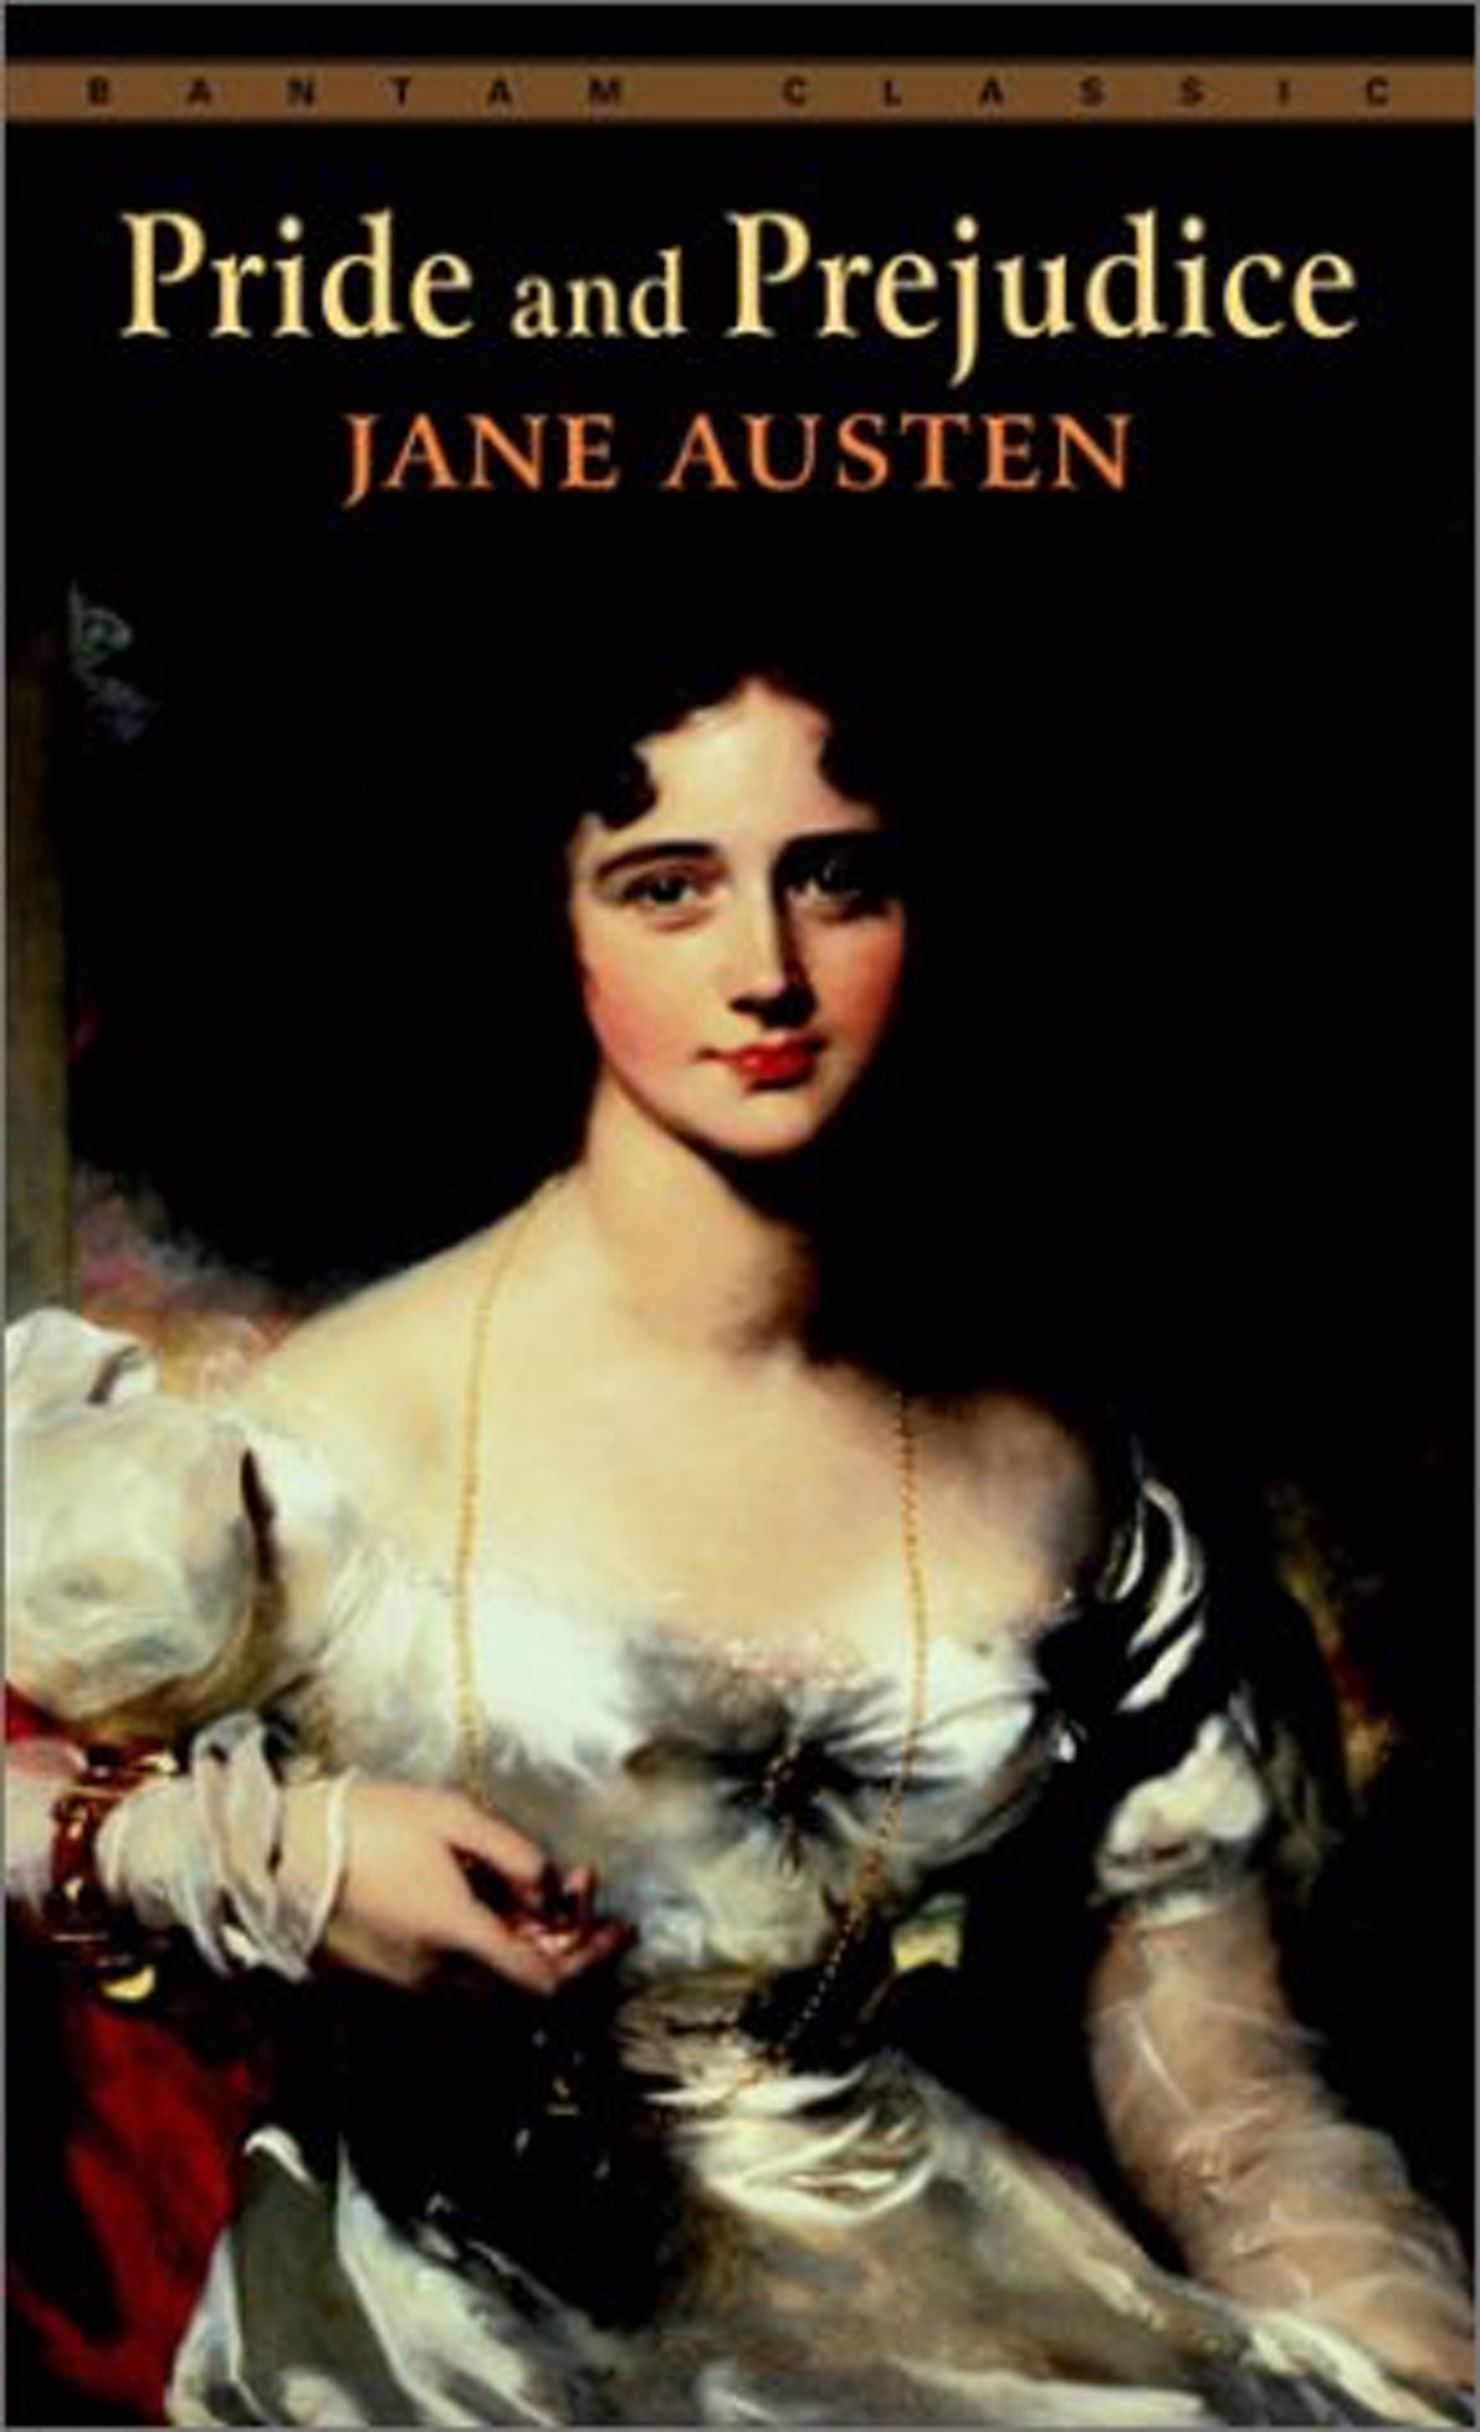 Pride and Prejudice Novel by Jane Austen